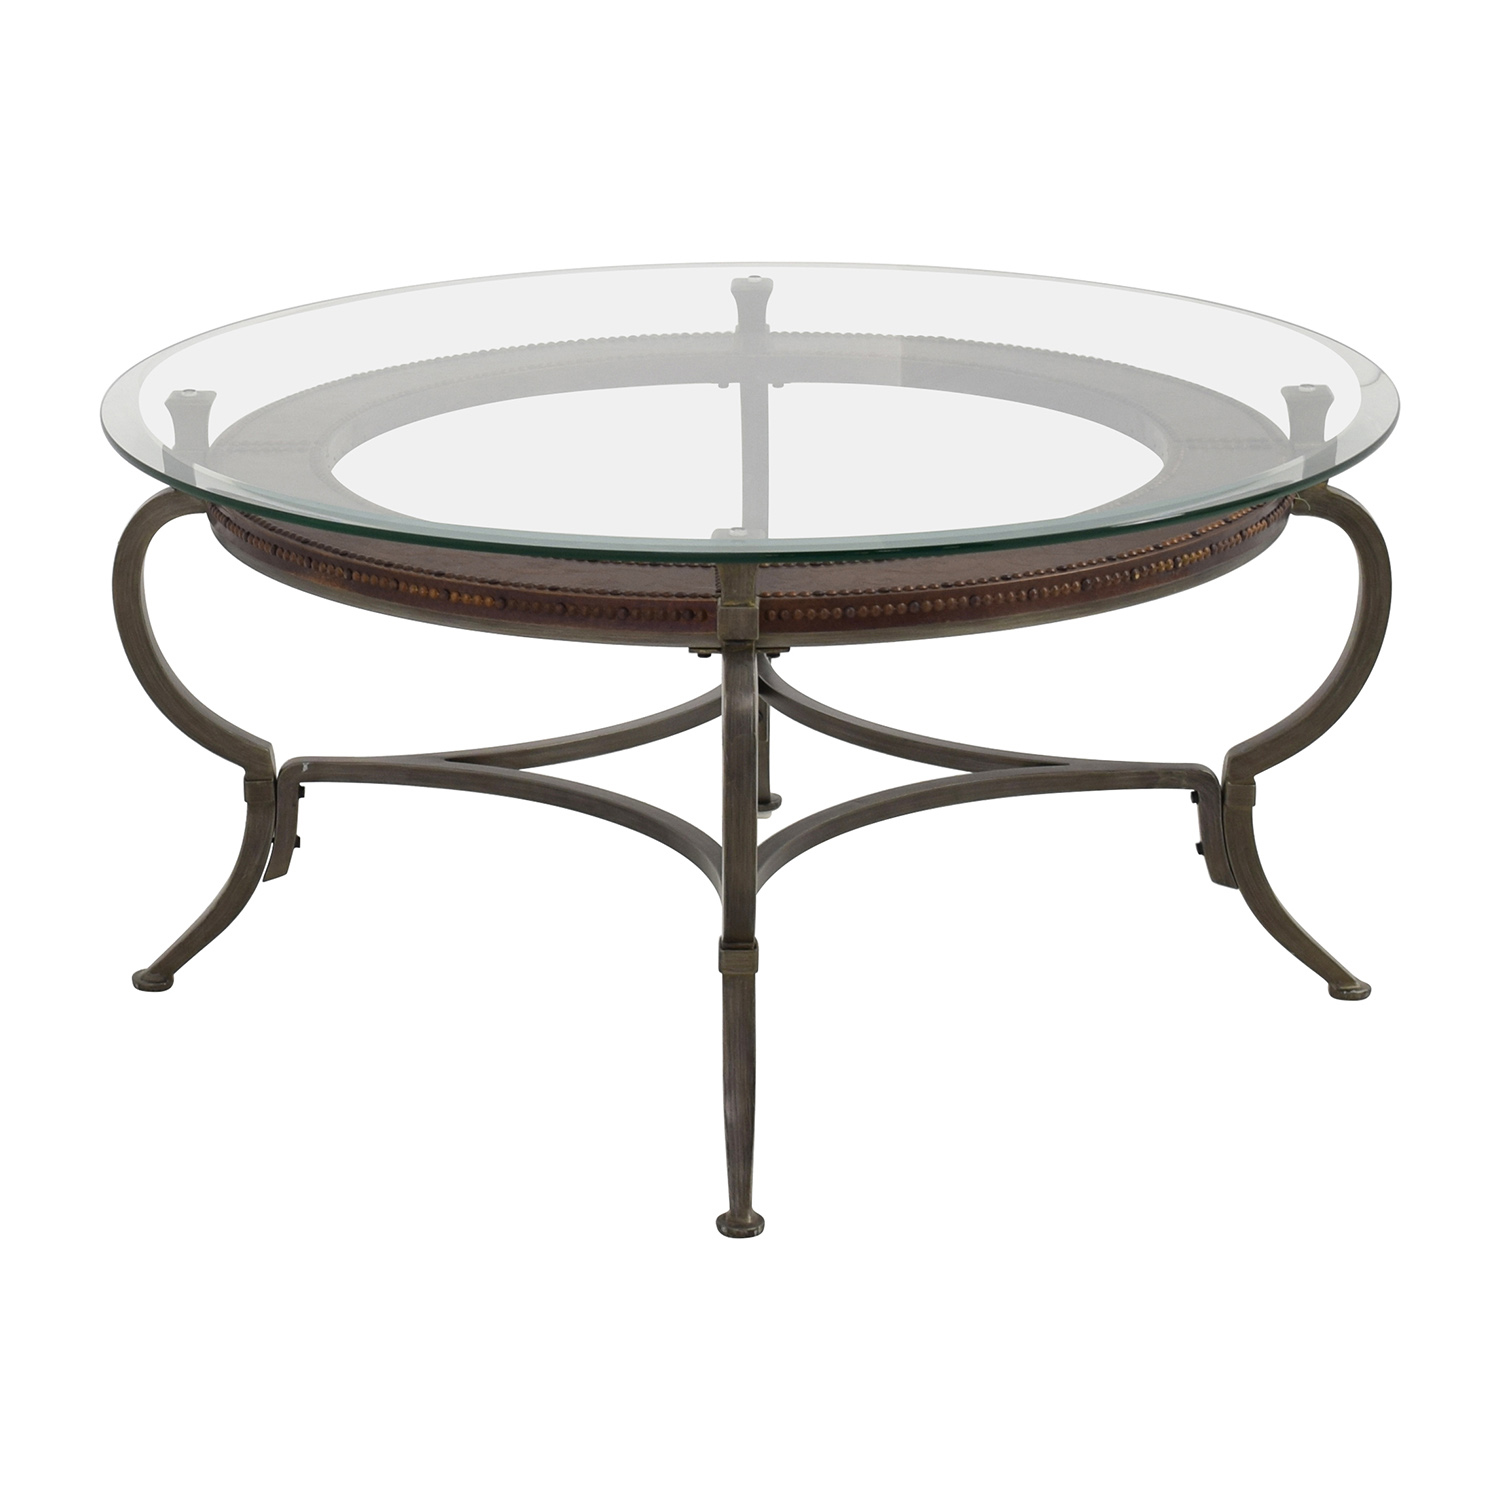 86 Off Macy 39 S Macy 39 S Round Metal And Glass Cocktail Table Tables